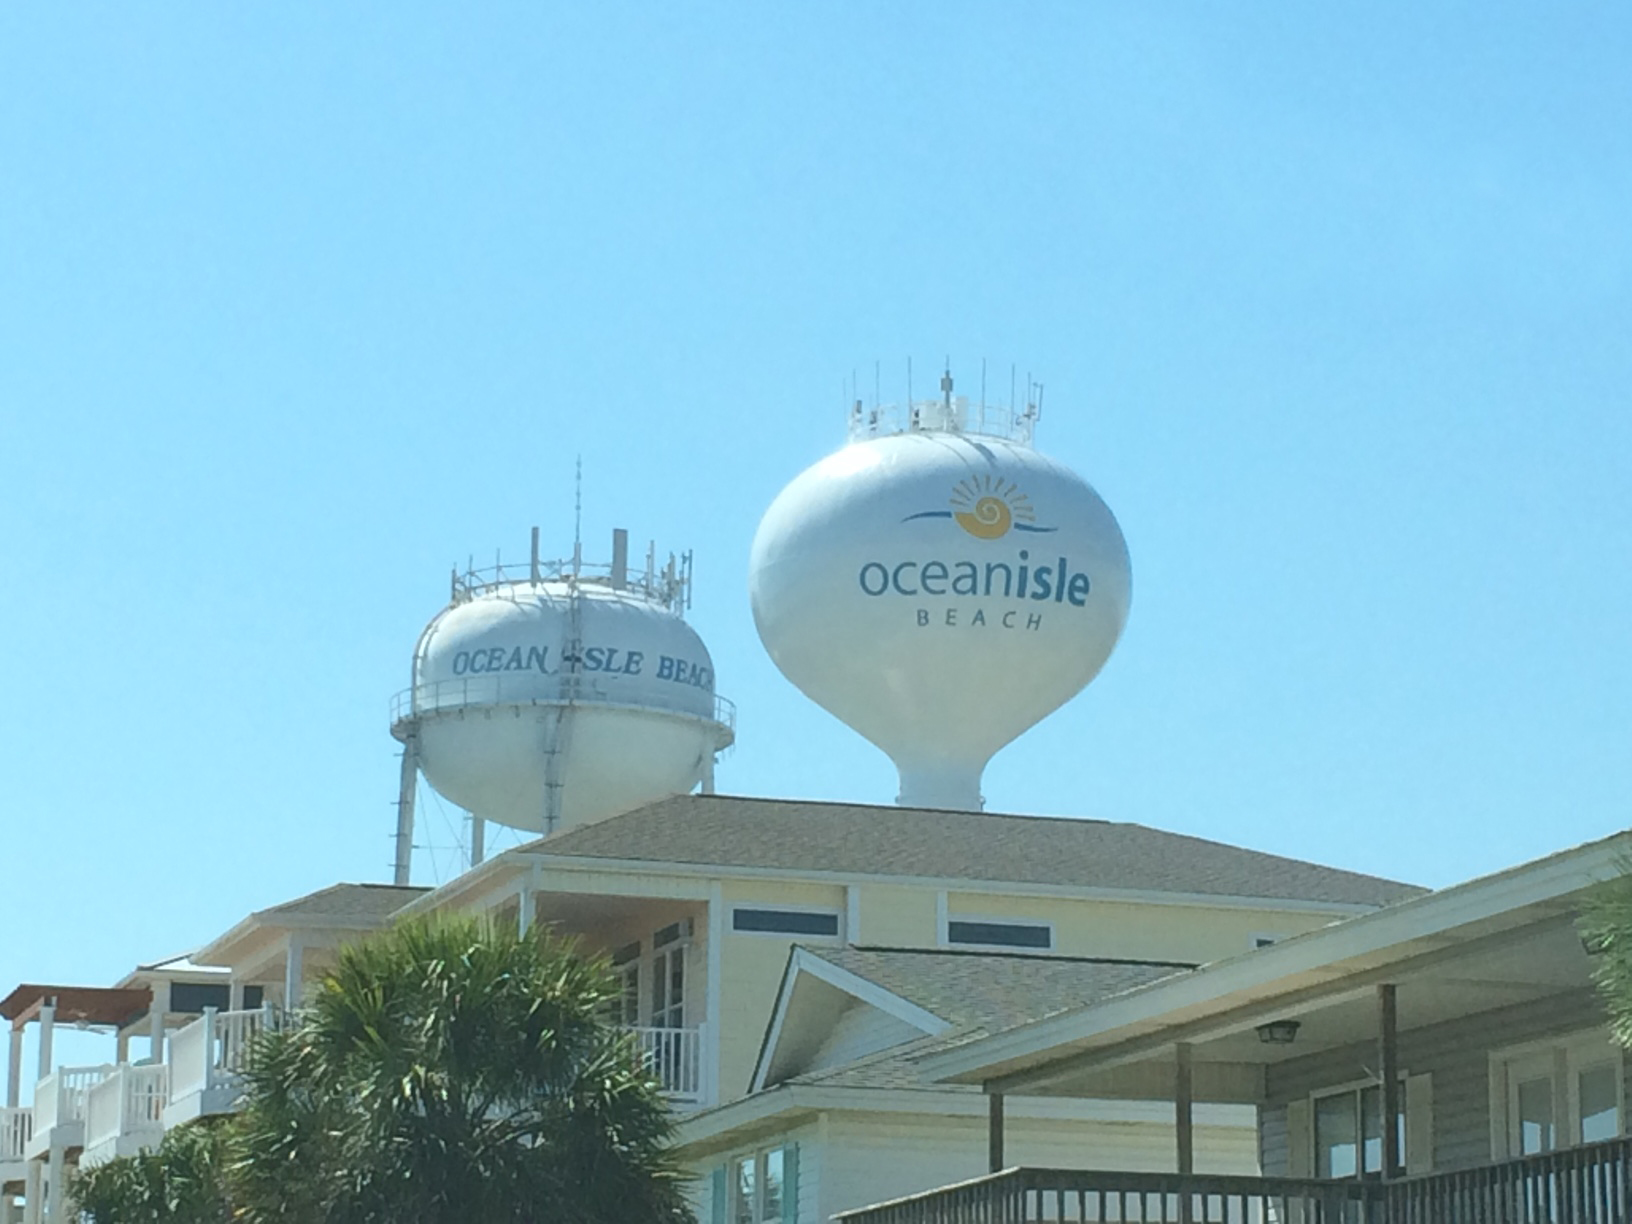 New Water Tower For Oib Ocean Isle Beach North Carolina Oceanislebeach Com